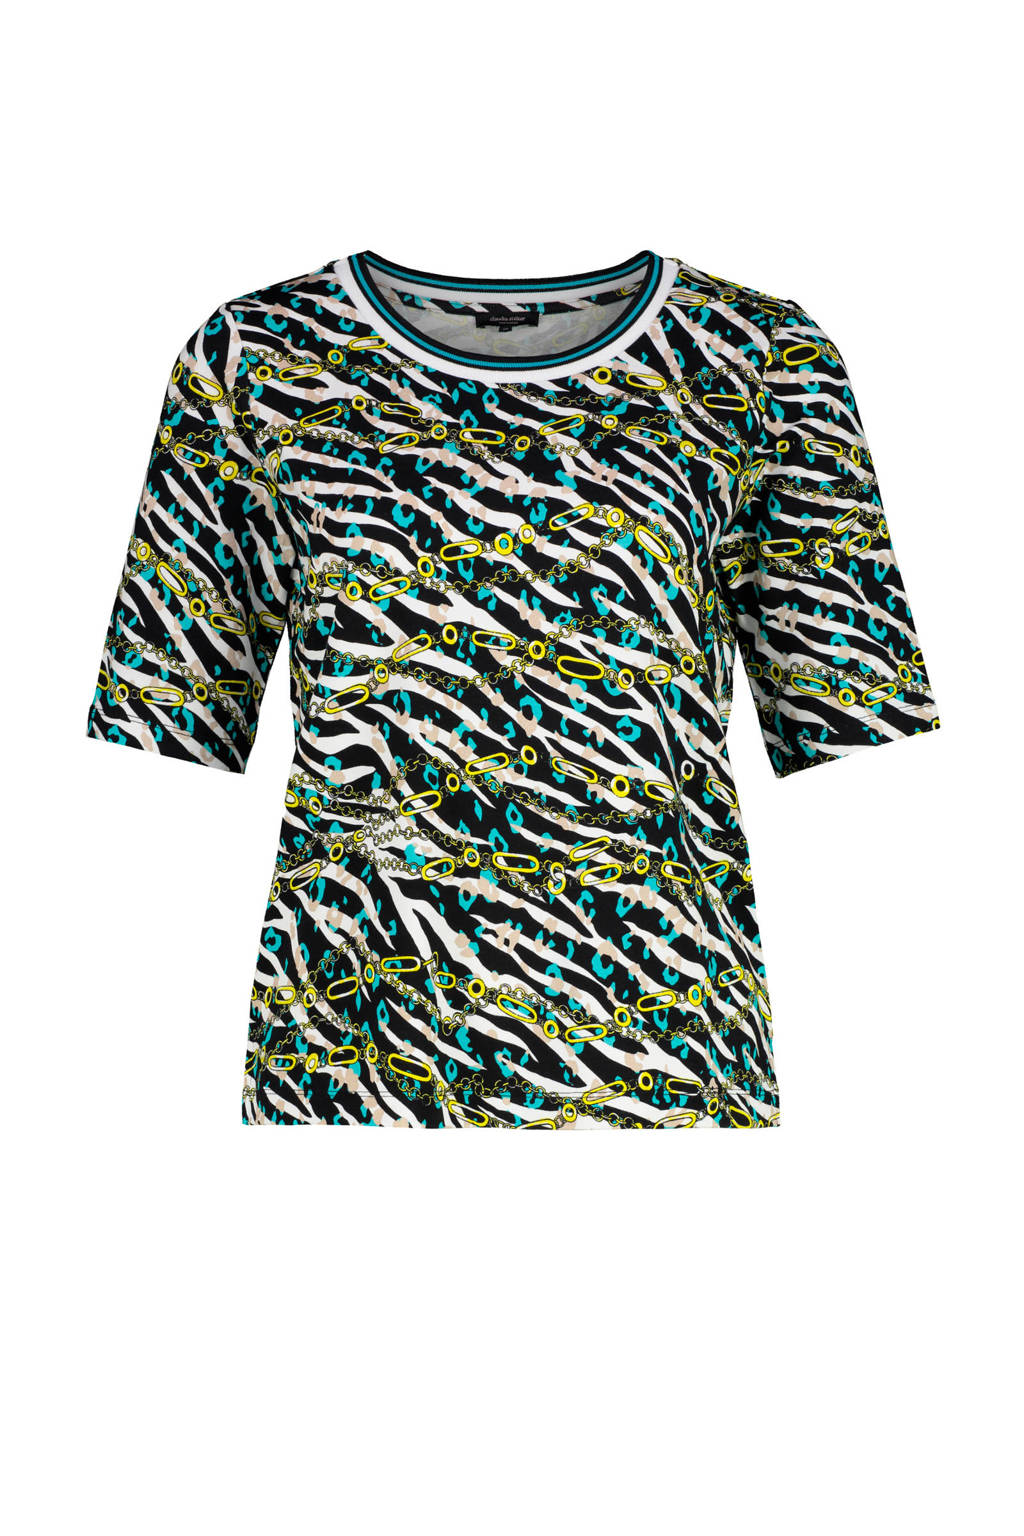 Claudia Sträter top met all over print limegroen/blauw/wit, Limegroen/blauw/wit